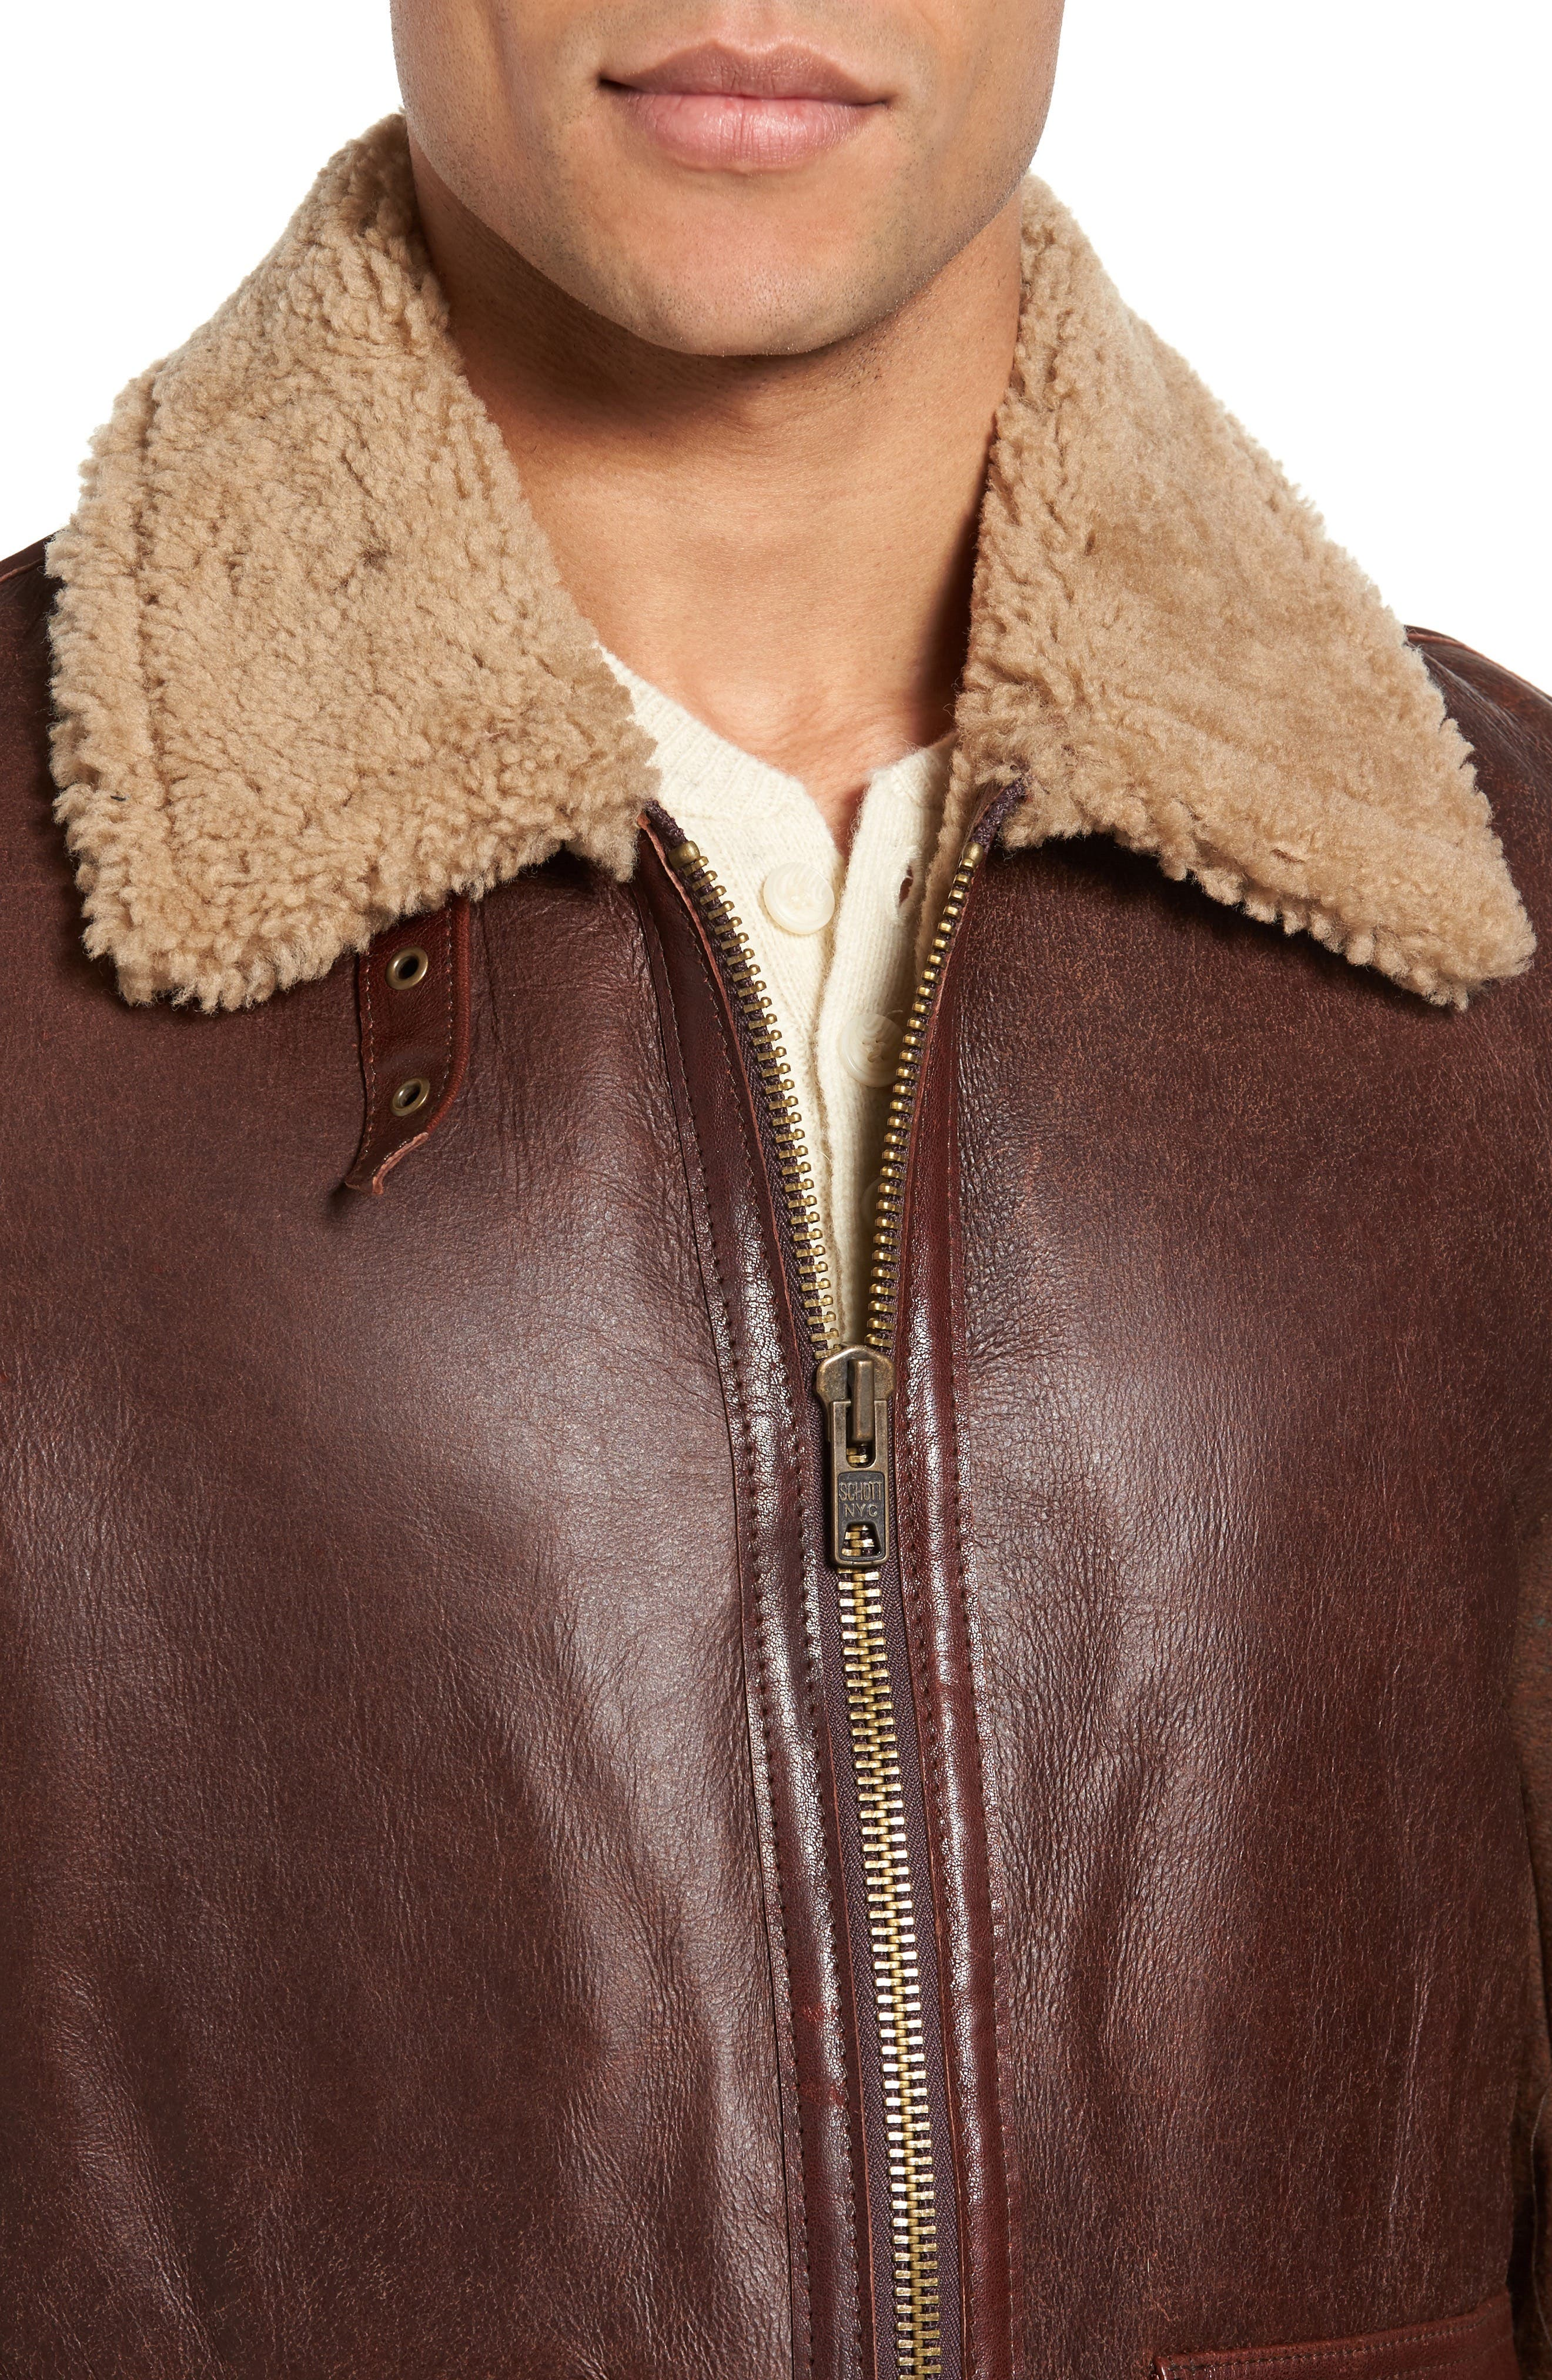 Mixed Media Flight Jacket with Genuine Shearling Collar & Lining,                             Alternate thumbnail 4, color,